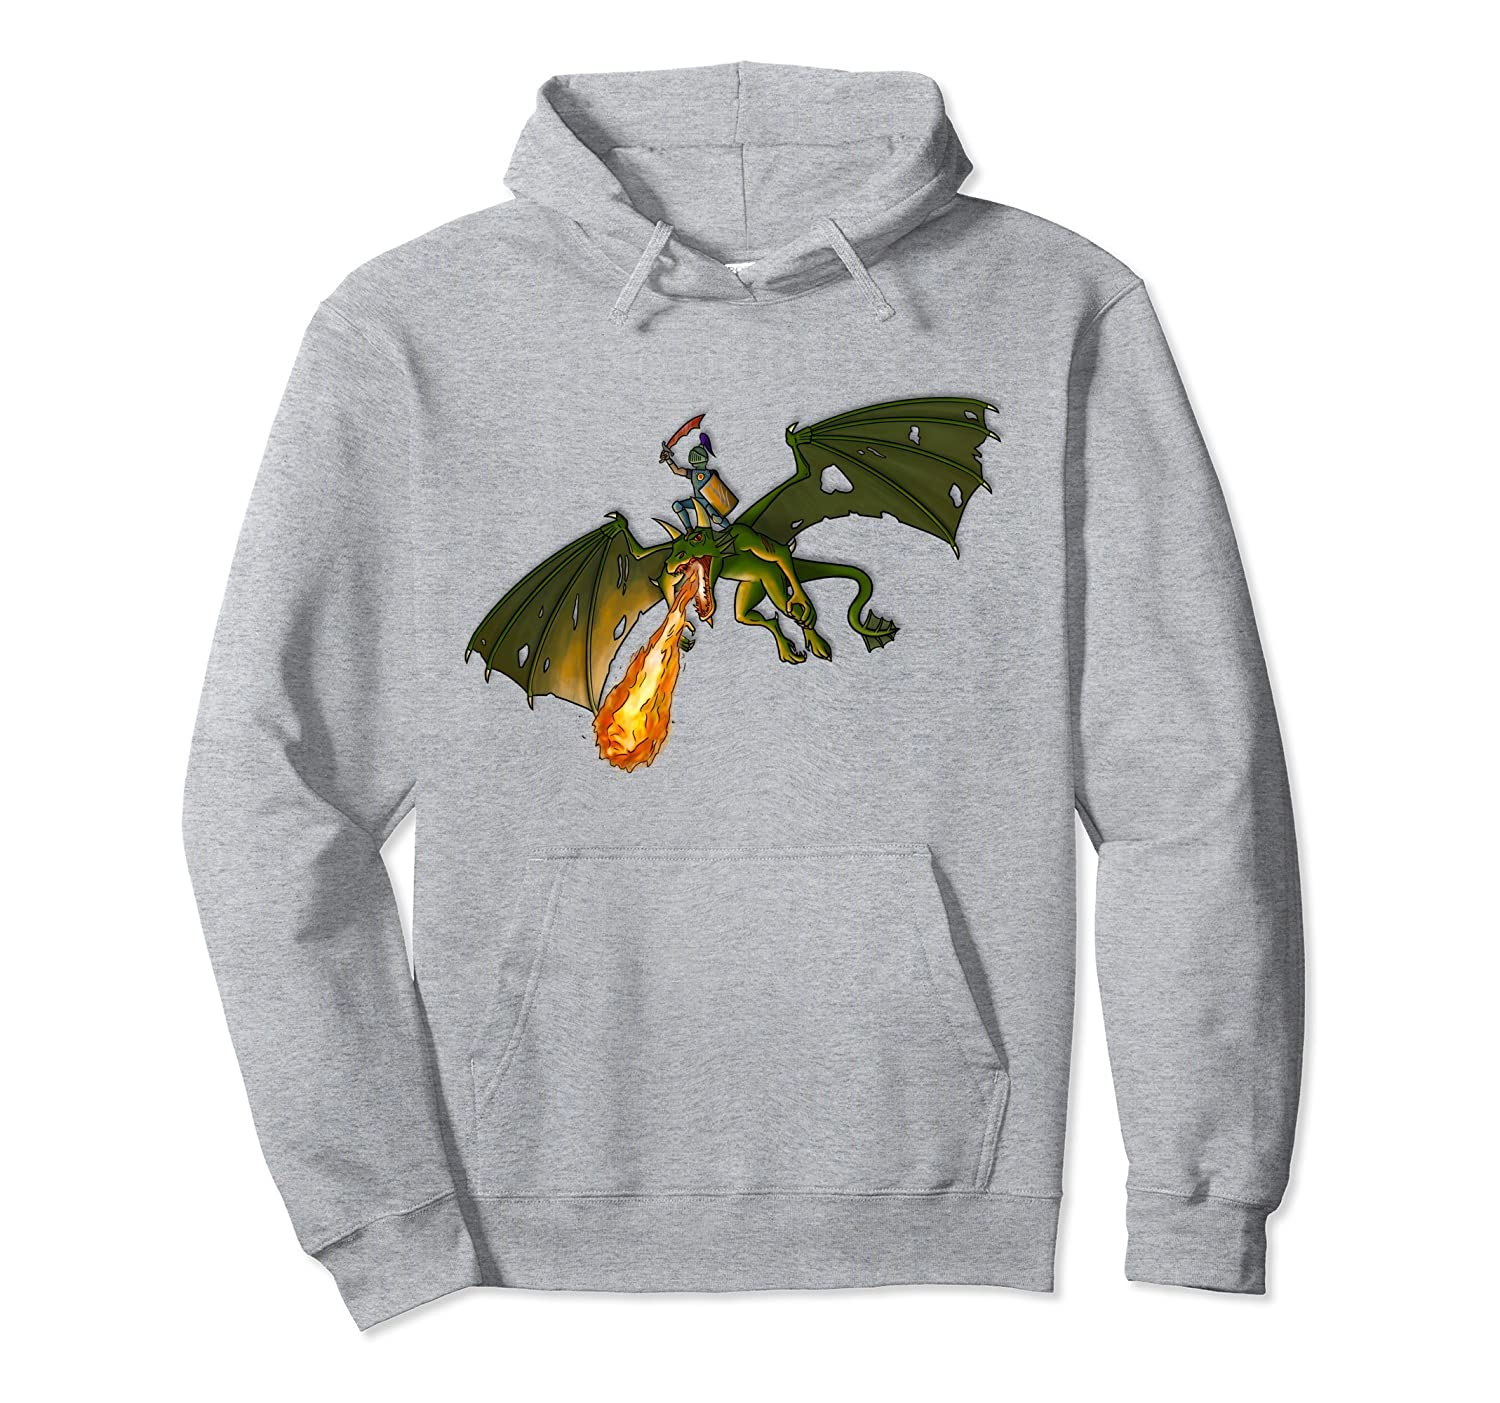 Most Expensive Hoodie! You Can't afford